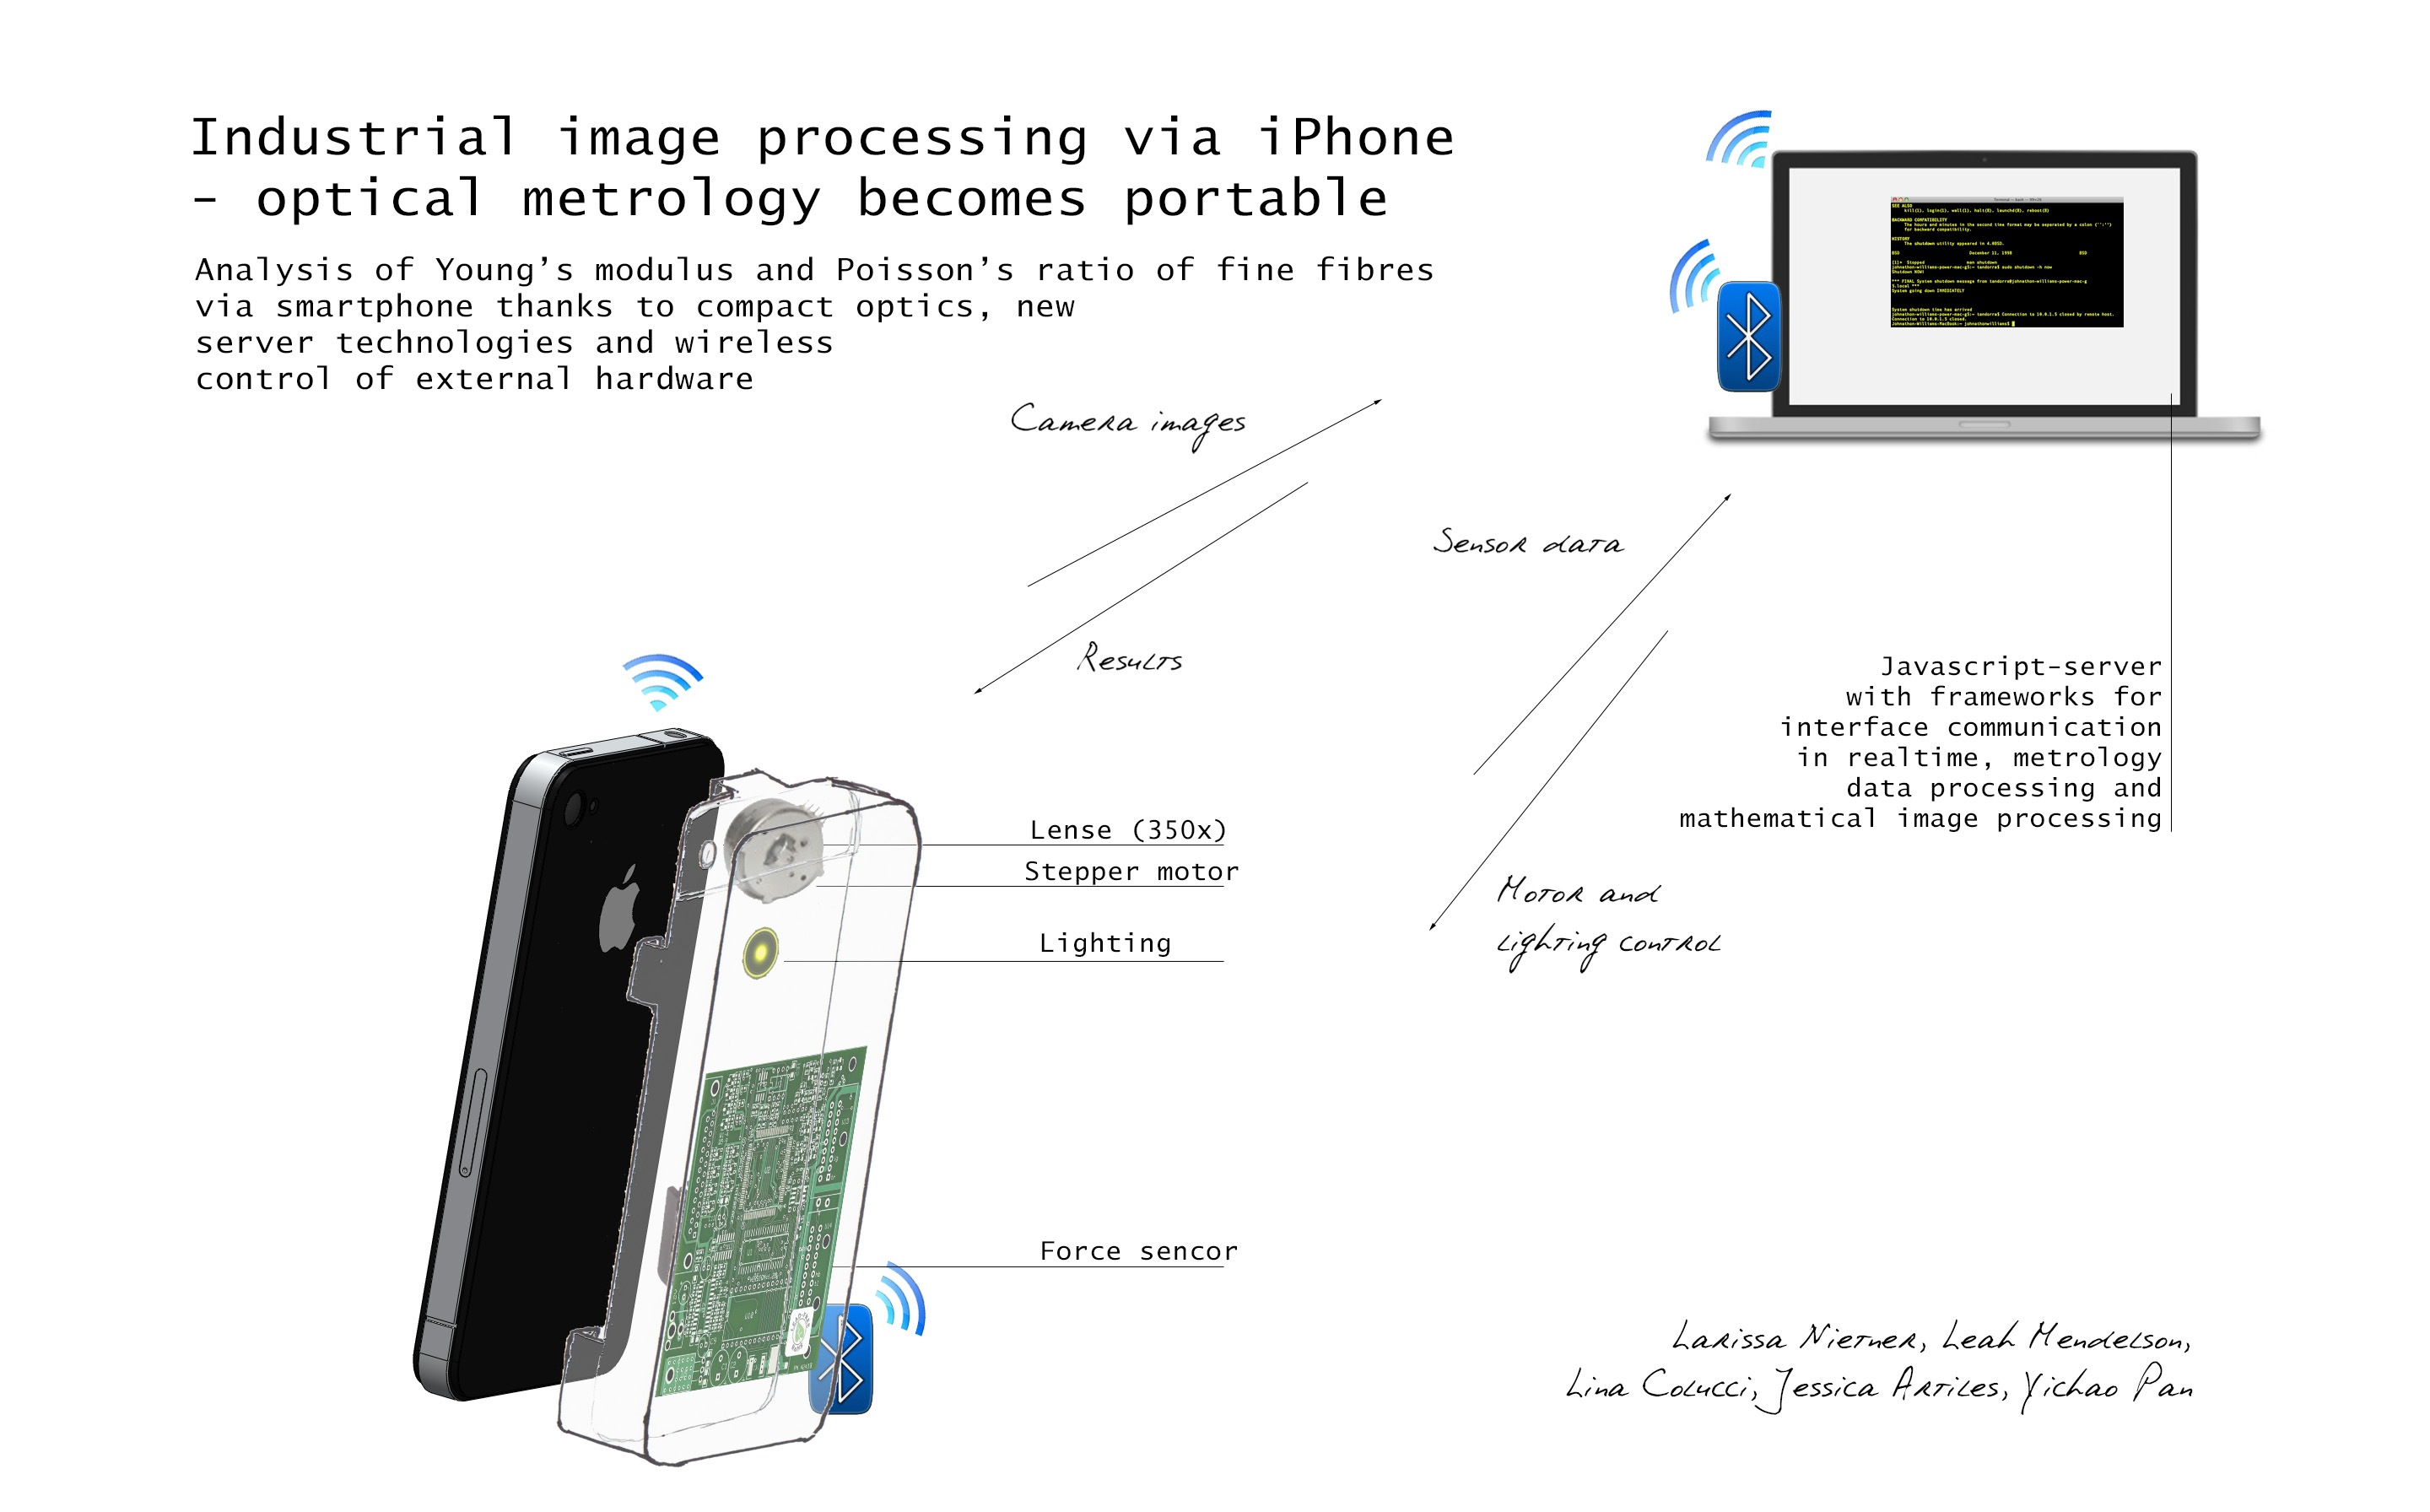 Hair Tester Linas Portfolio Lighting Diagram Iphone To Record The Filenames Within Scope Of Interaction With Remote Webservers From A Security Perspective For Sake Space